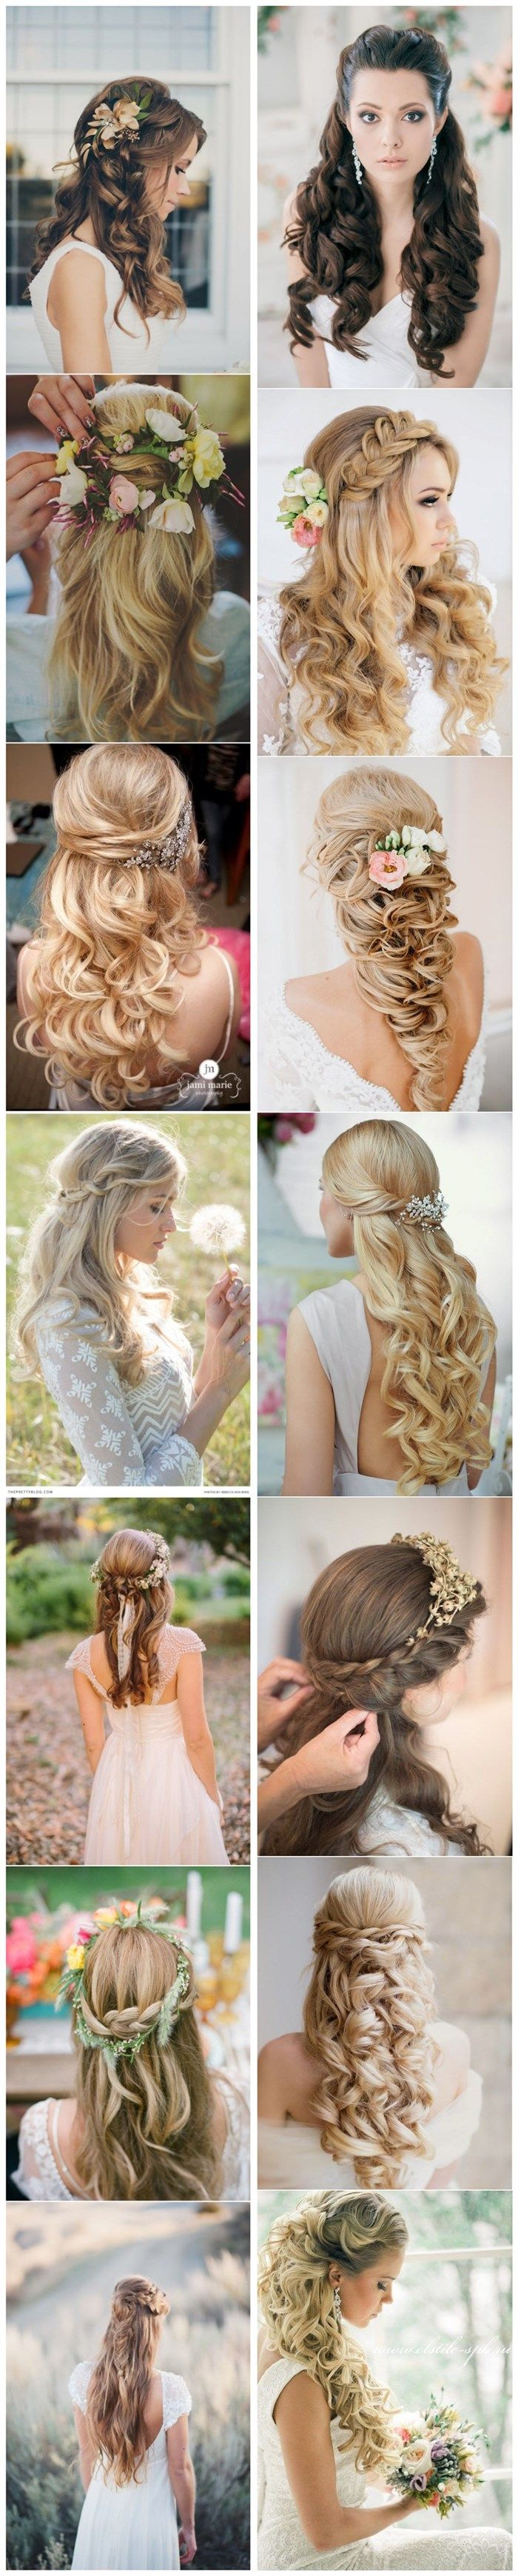 Beautiful elegant hairstyles